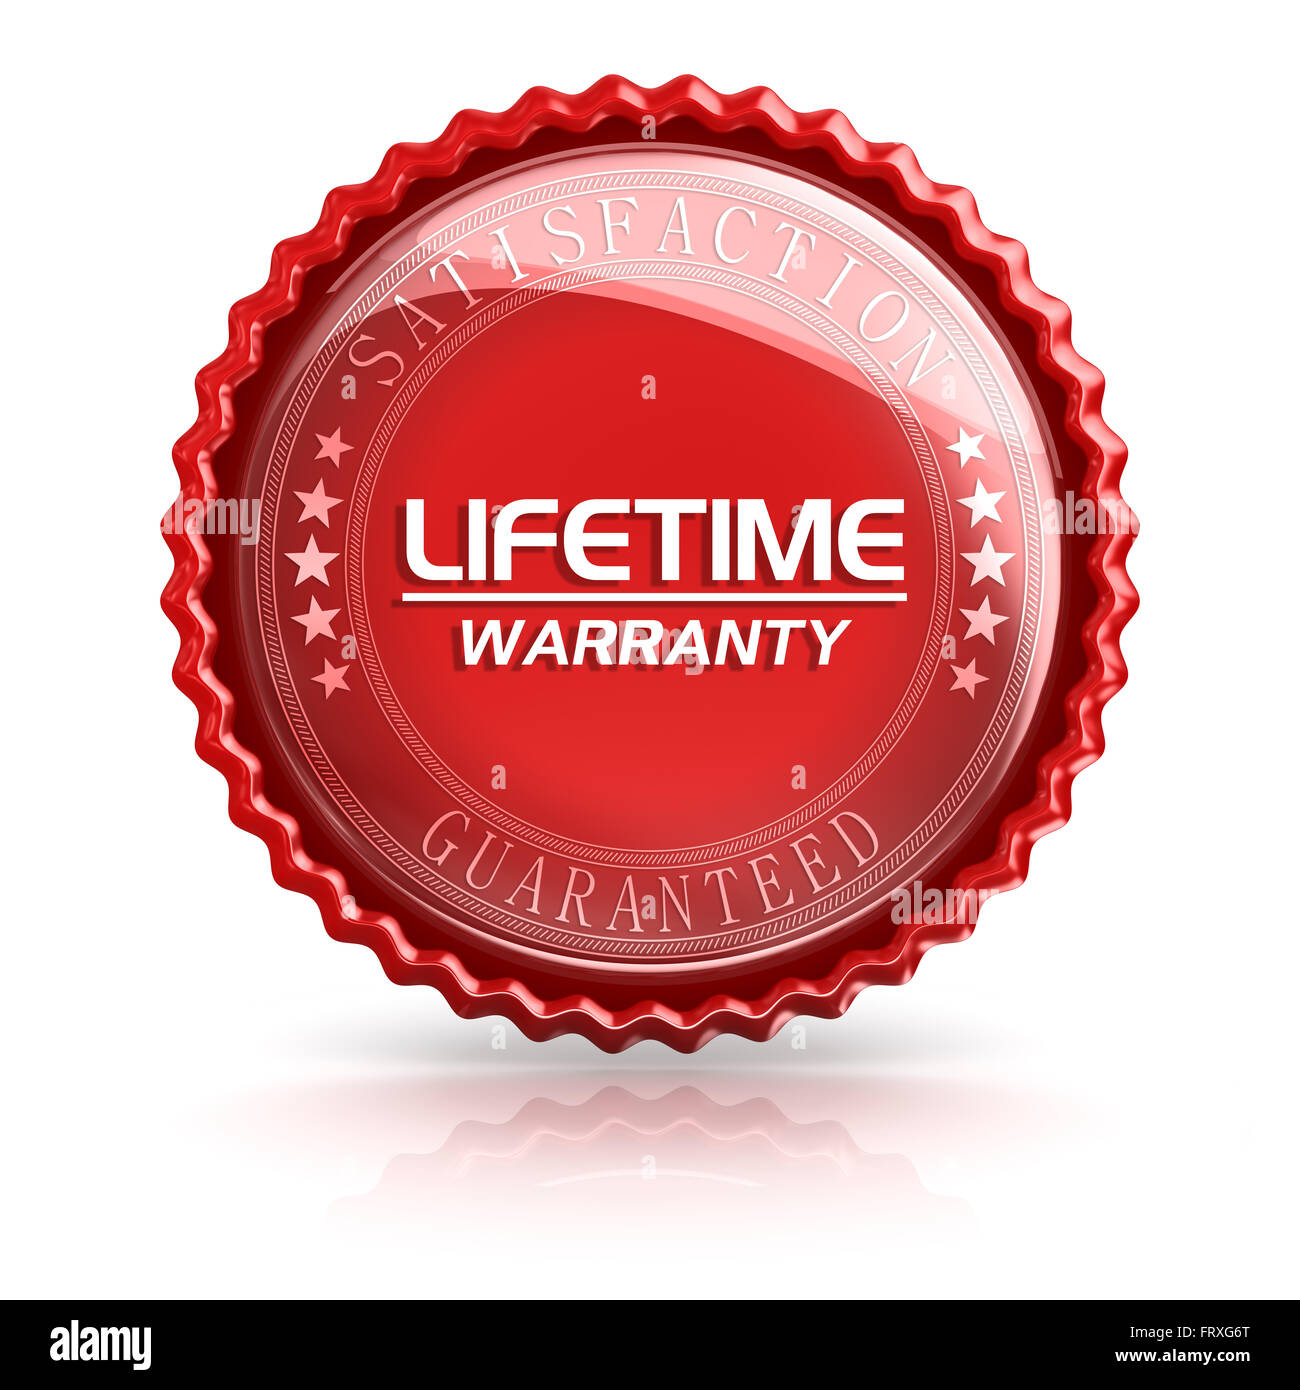 Lifetime Warranty , 3d rendered image. Stock Photo